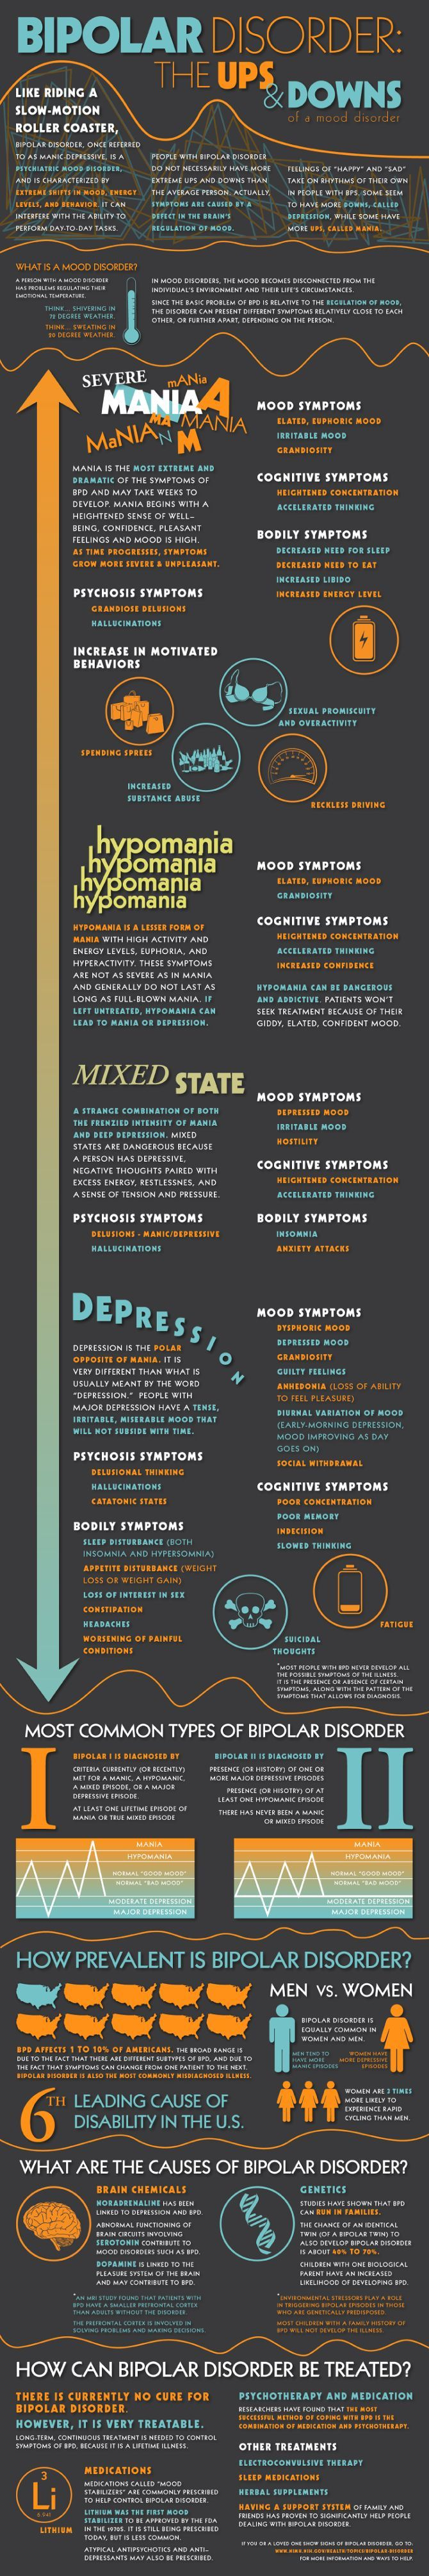 Bipolar Disorder Infographic An infographic showing the symptoms, diagnosis, prevalence, causes, and treatment of Bipolar Disorder, which is...